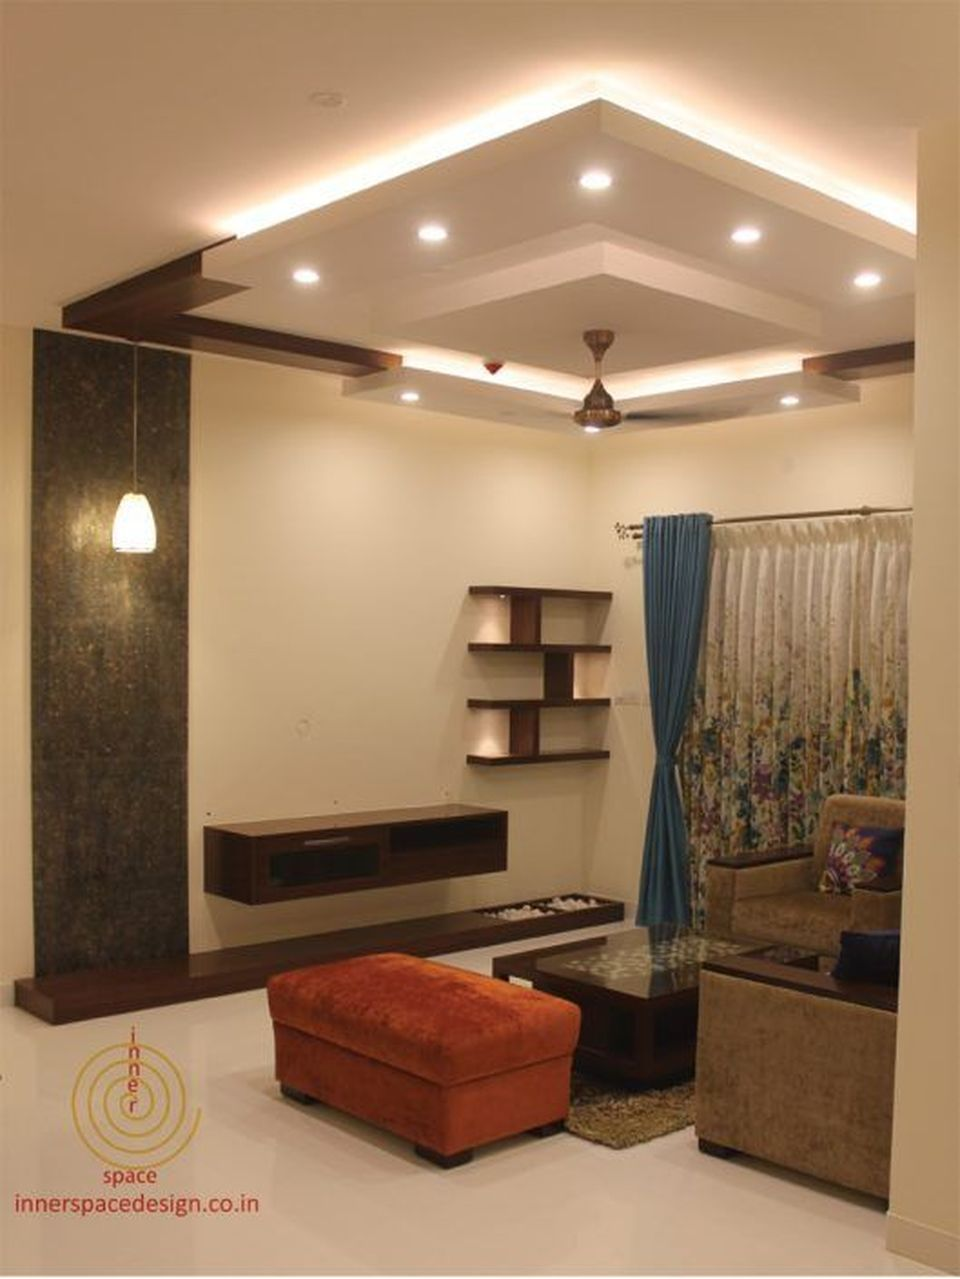 Latest false ceiling design ideas for modern interior room with led lights designs in pinterest also rh